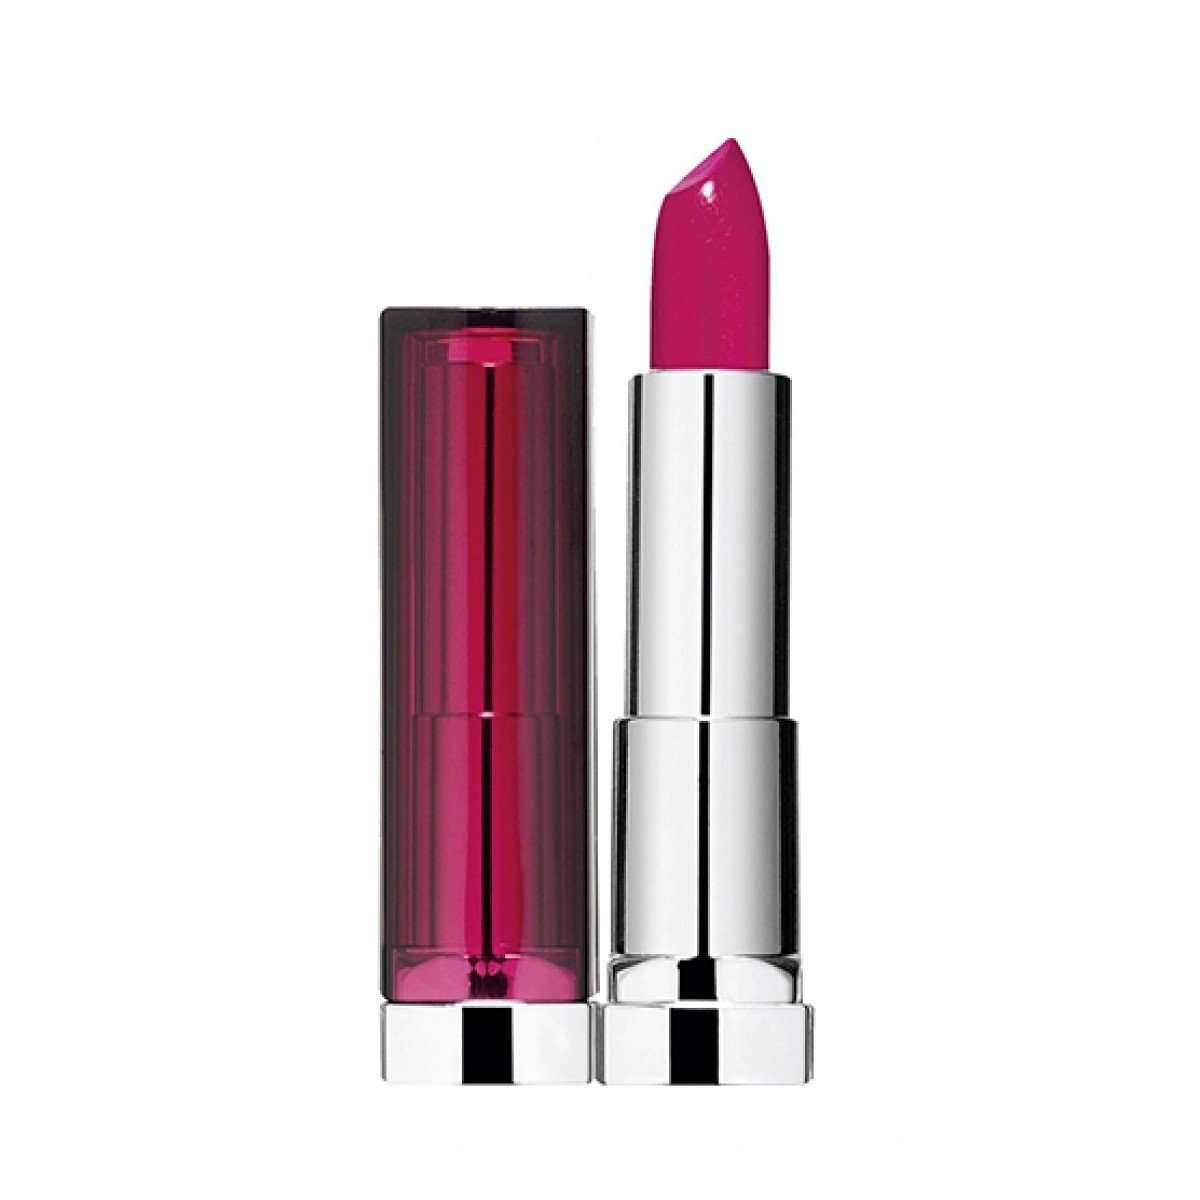 Maybelline New York Color Sensational Lipstick - 20 ml, Pink Punch 175